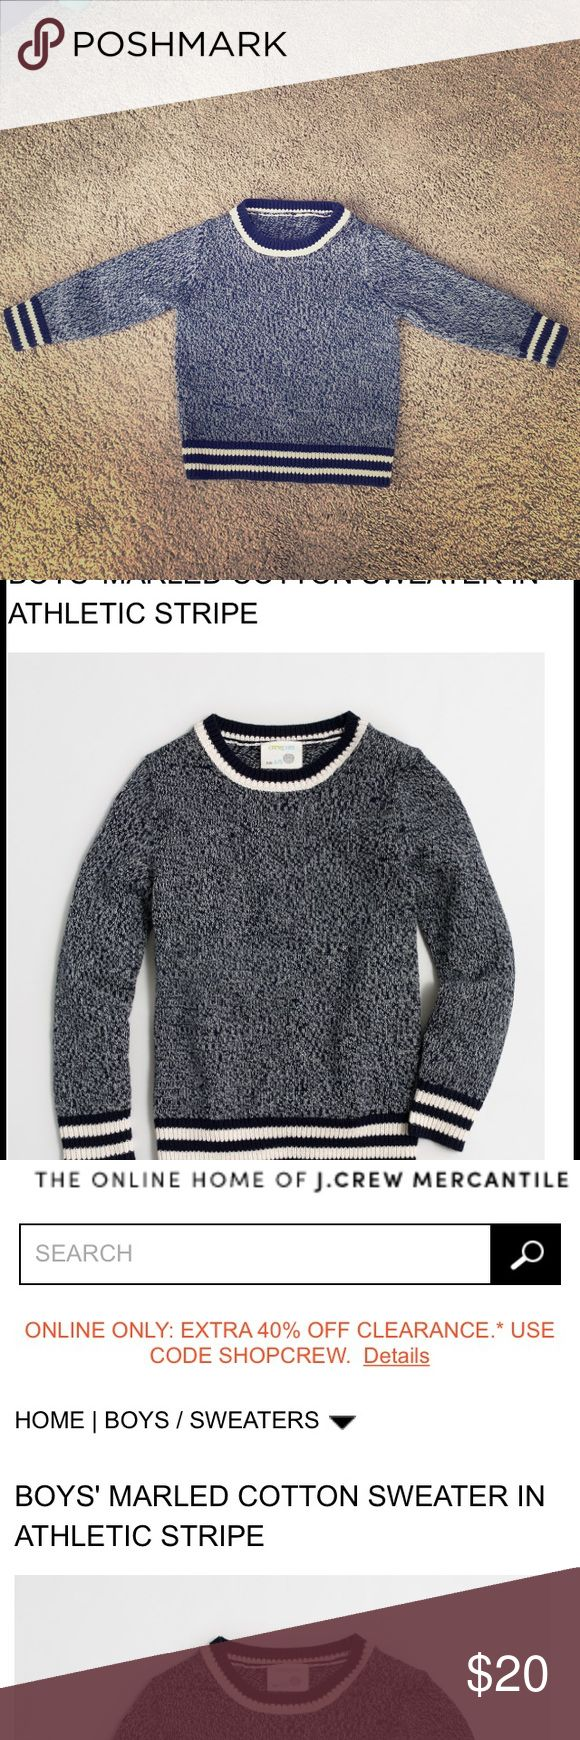 Crew neck baby sweater J crew factory boys cotton Navy and white marled sweater size 18- 24 months. I had taken the tags off because  it bothered his neck but you can look up the item number located on the side seam tag #style C8956 J. Crew Jackets & Coats